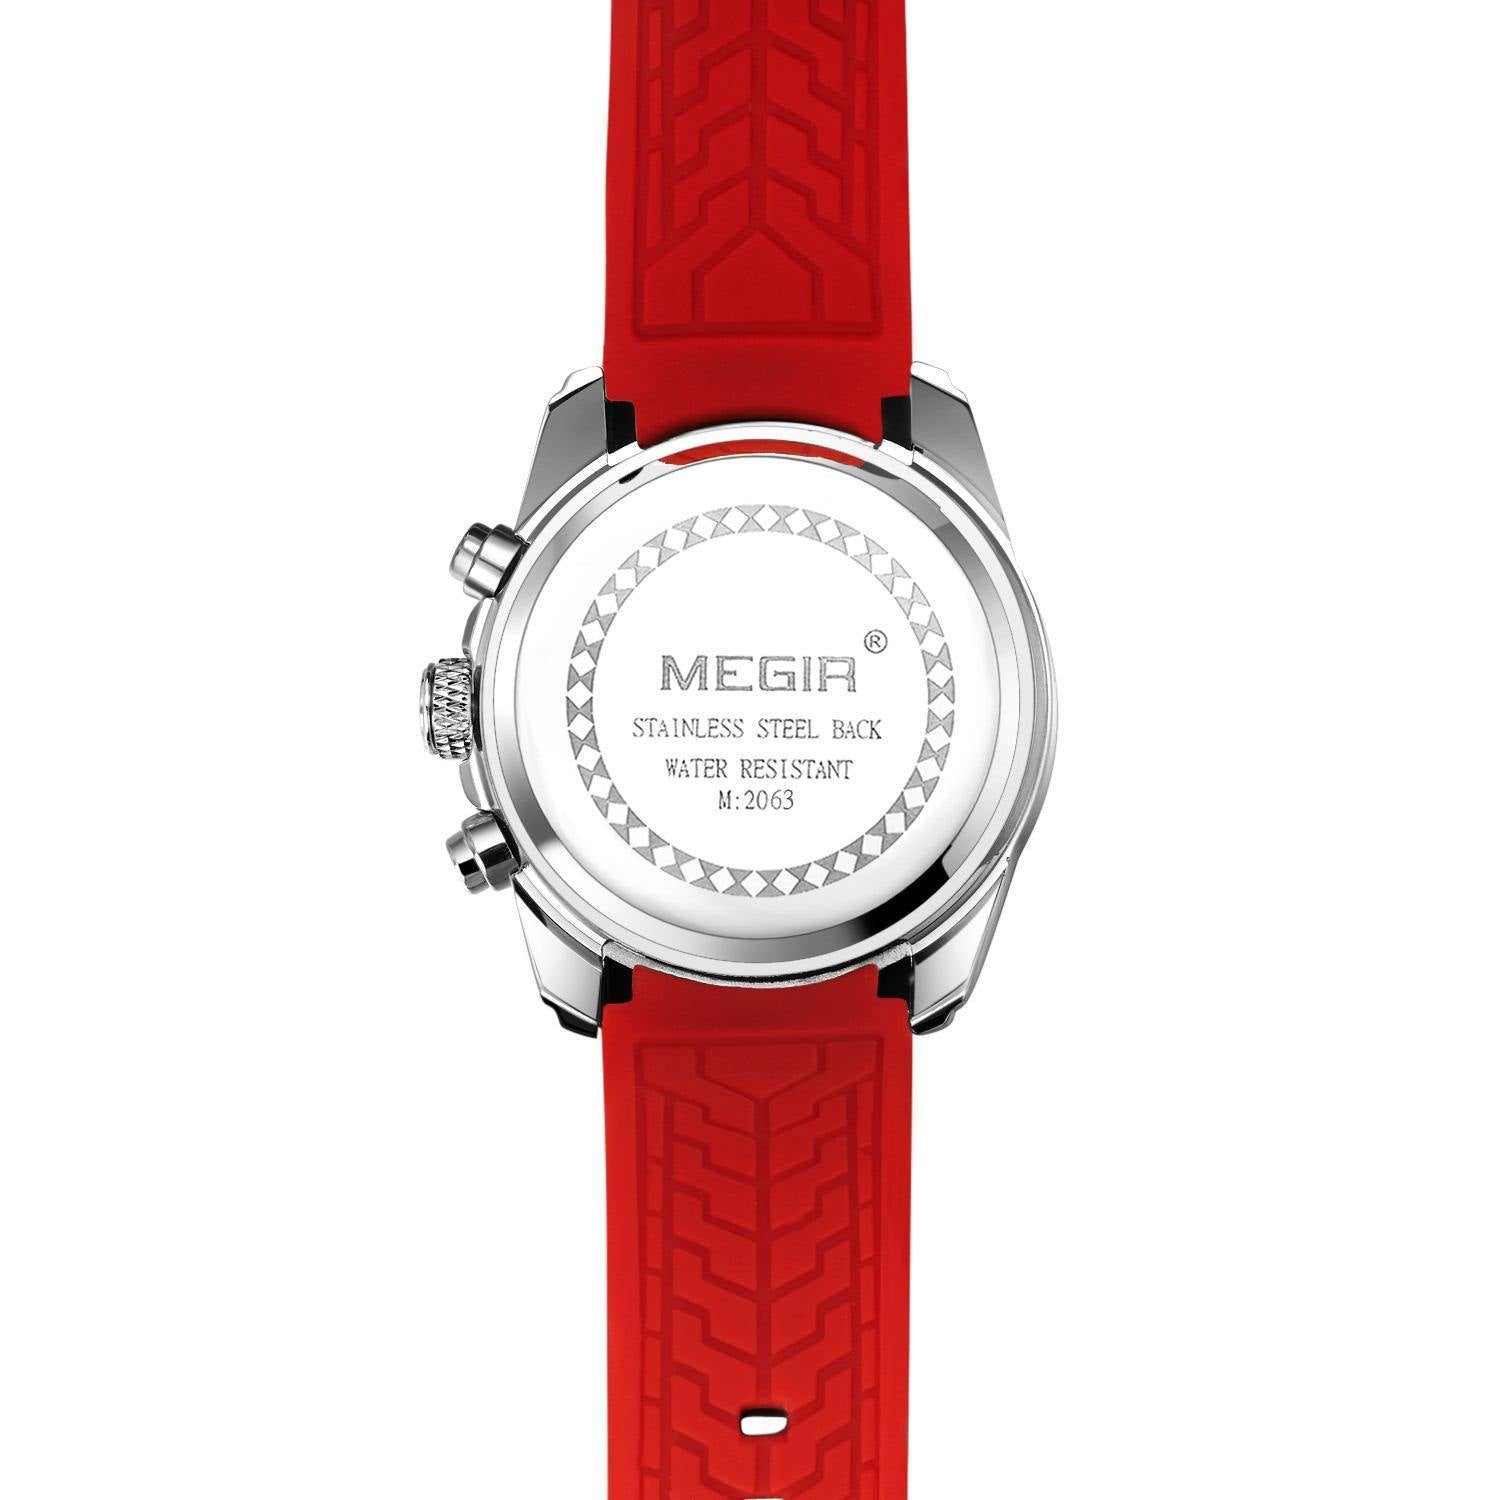 Megir Chronograph Analog Quartz Watch 2063 - MEGIR